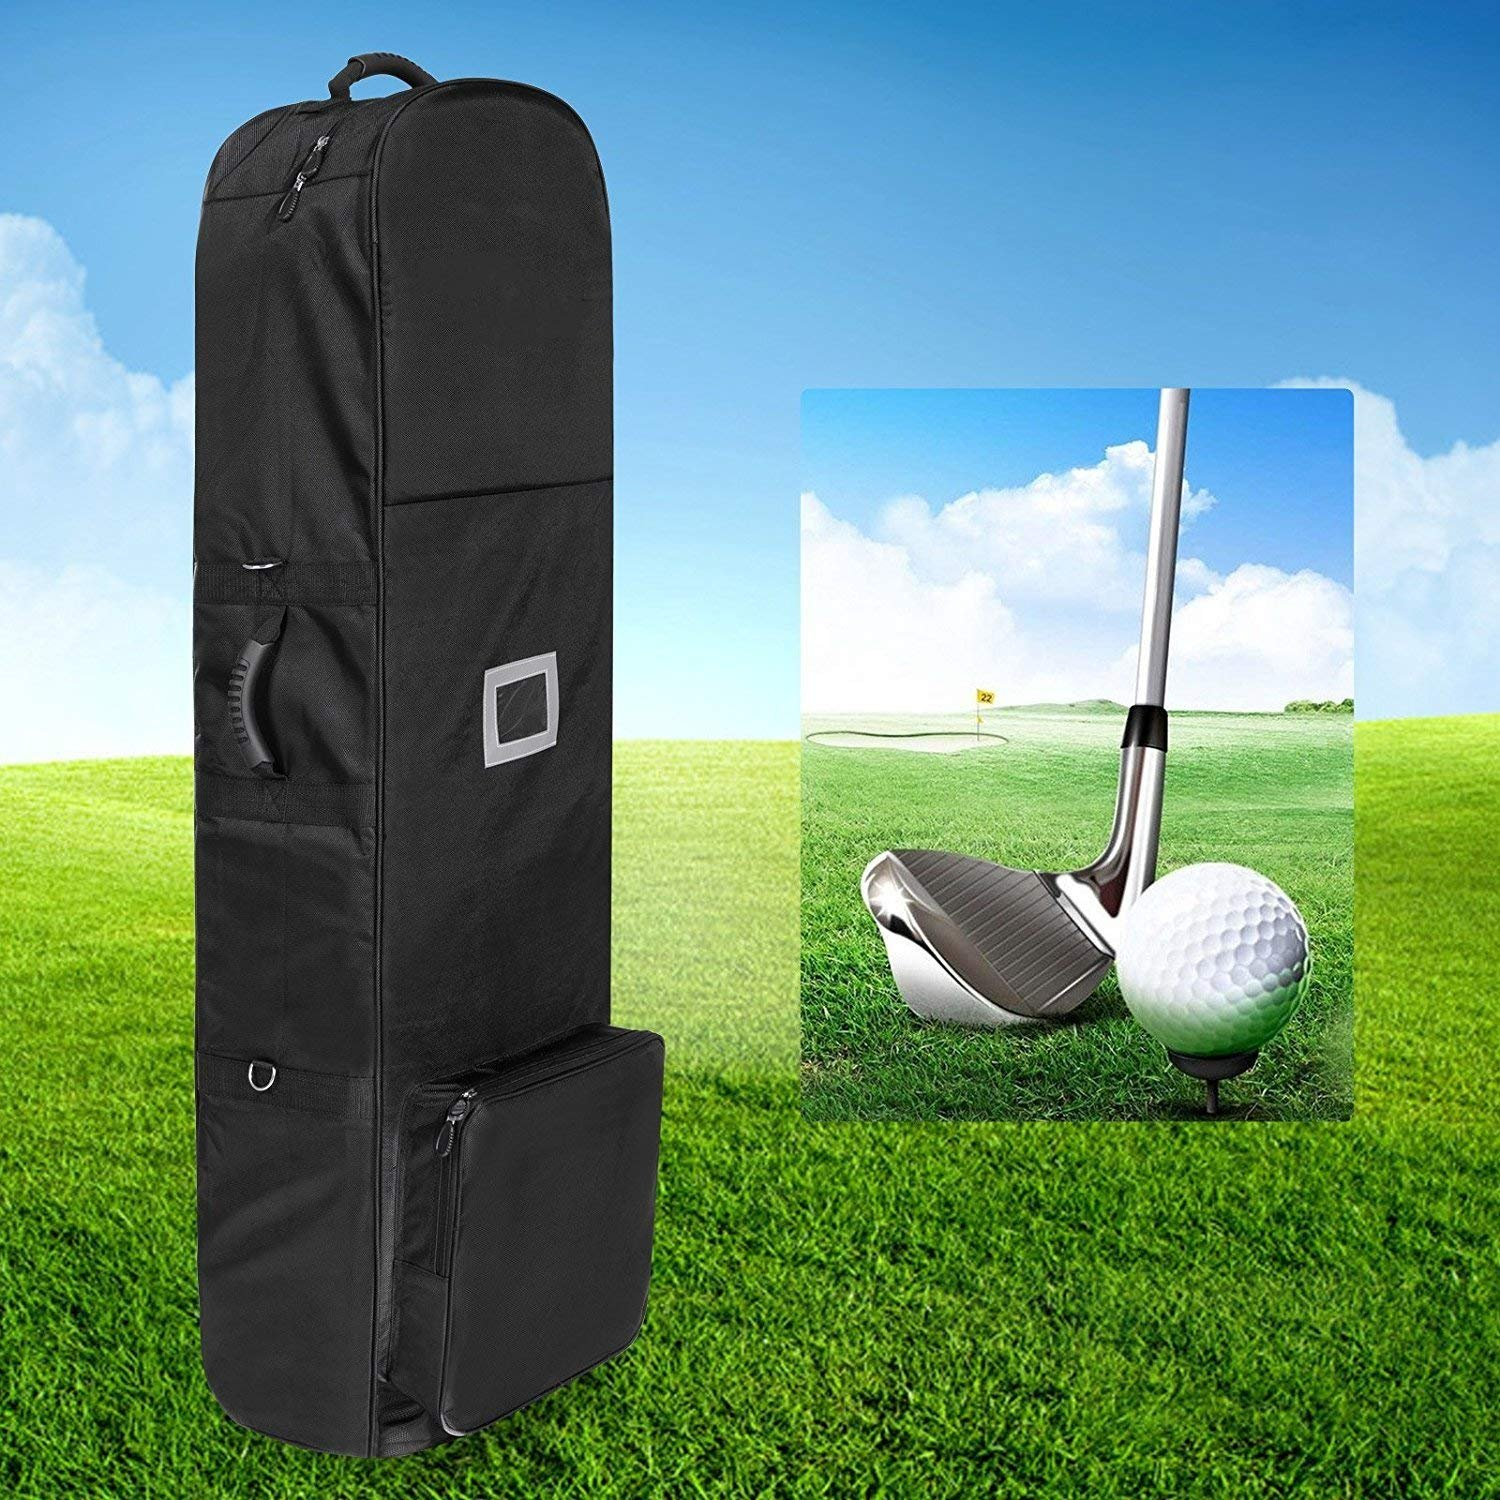 Lantusi Golf Bag Travel Cover Case with Wheels, Black Oxford (US STOCK)